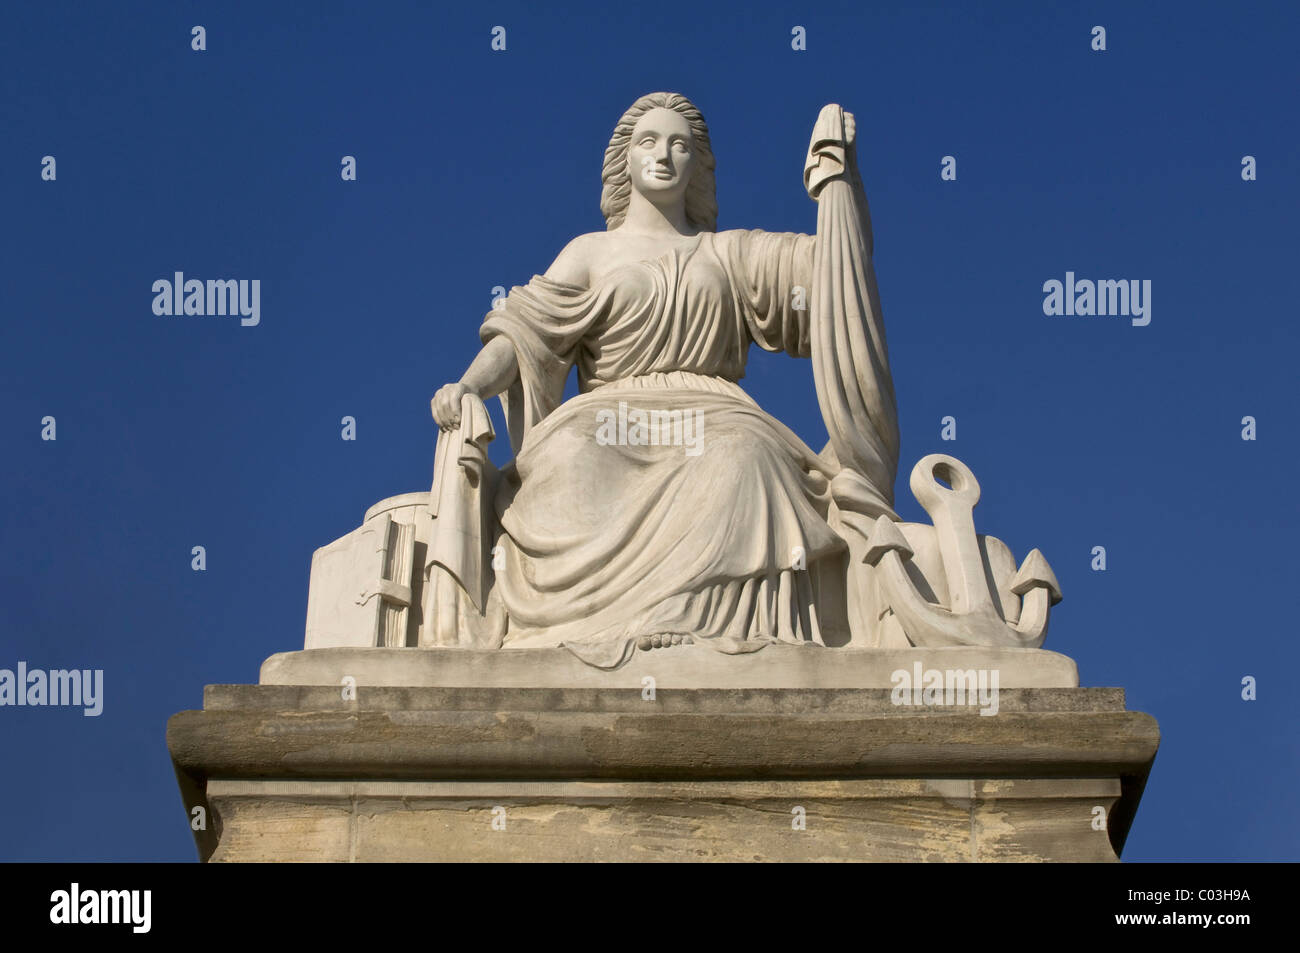 Statue for shipping and trade, Castle Gate Mainz, Rhineland-Palatinate, Germany, Europe - Stock Image